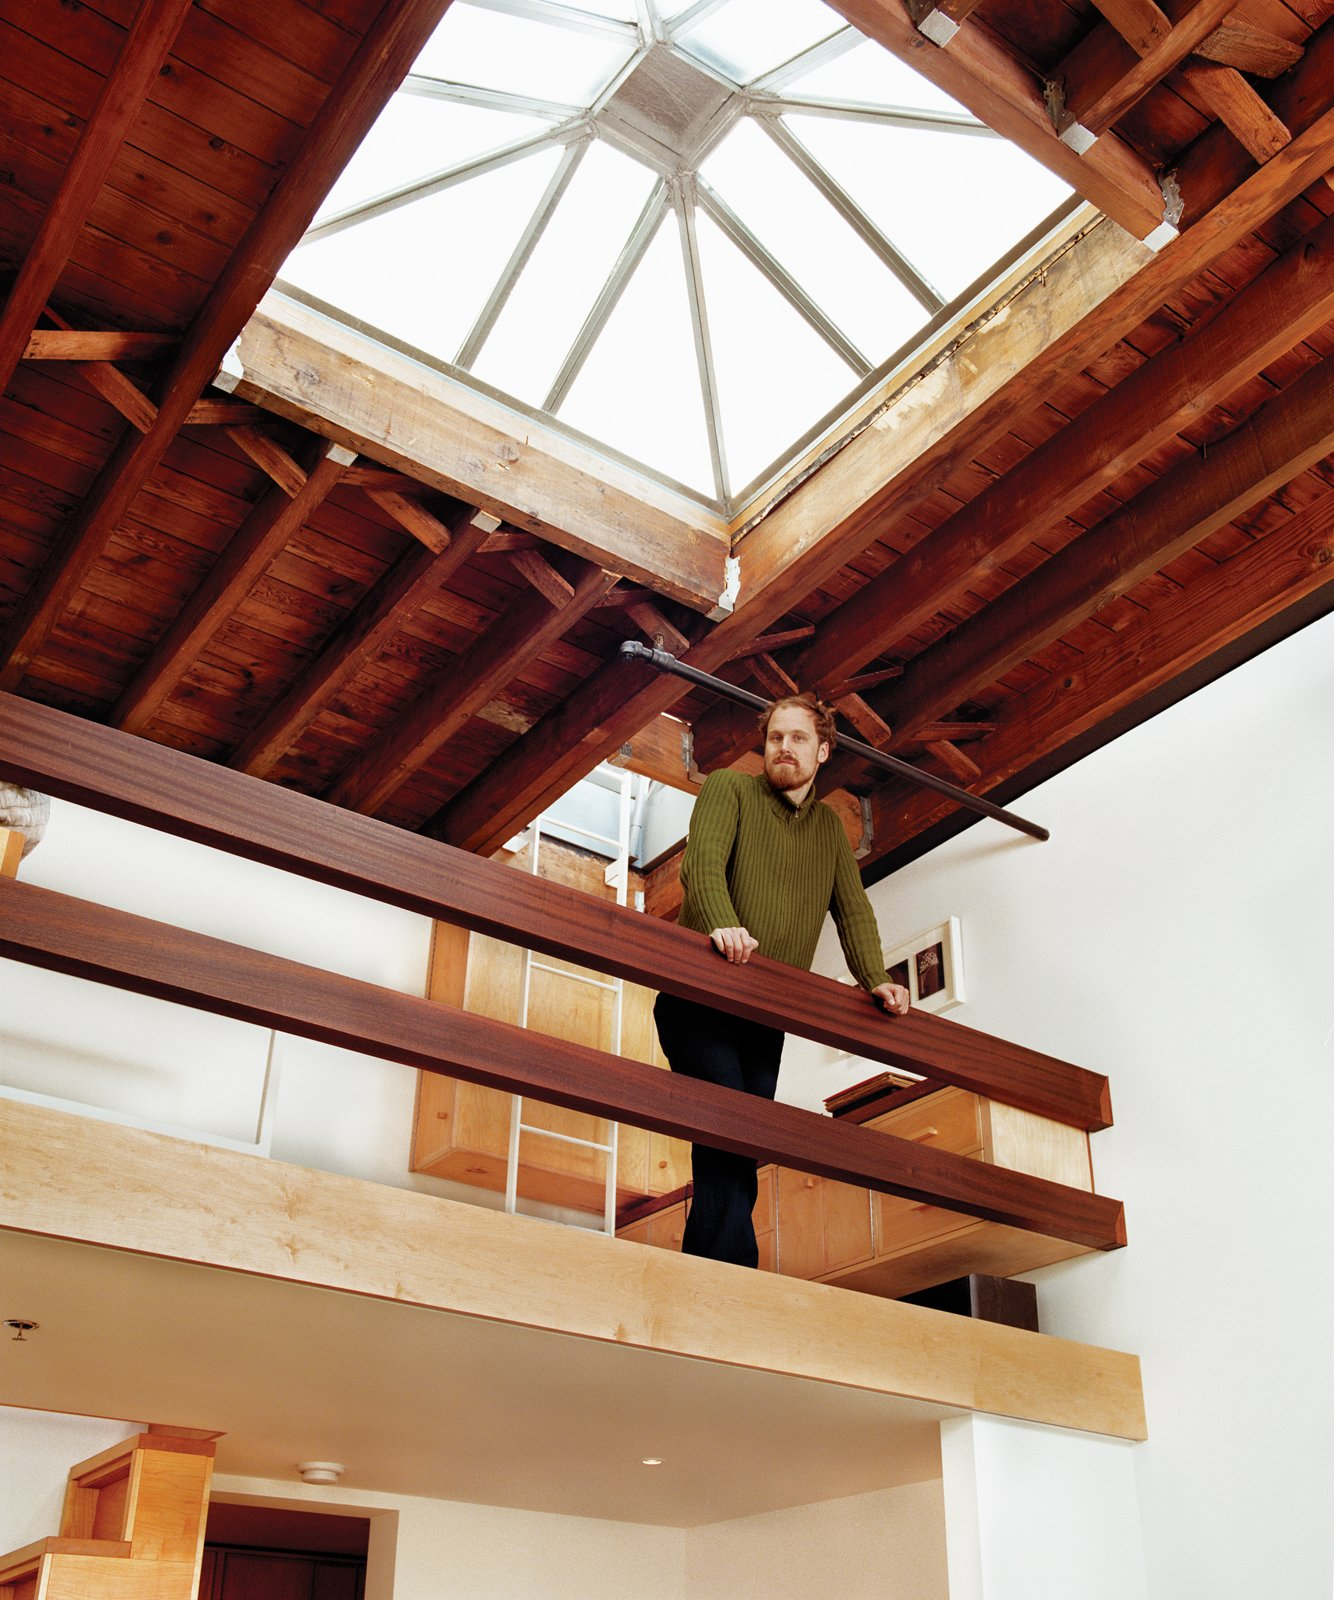 The sleeping loft is fitted with mahogany rails. Clever Loft Spaces for Small Places by Diana Budds